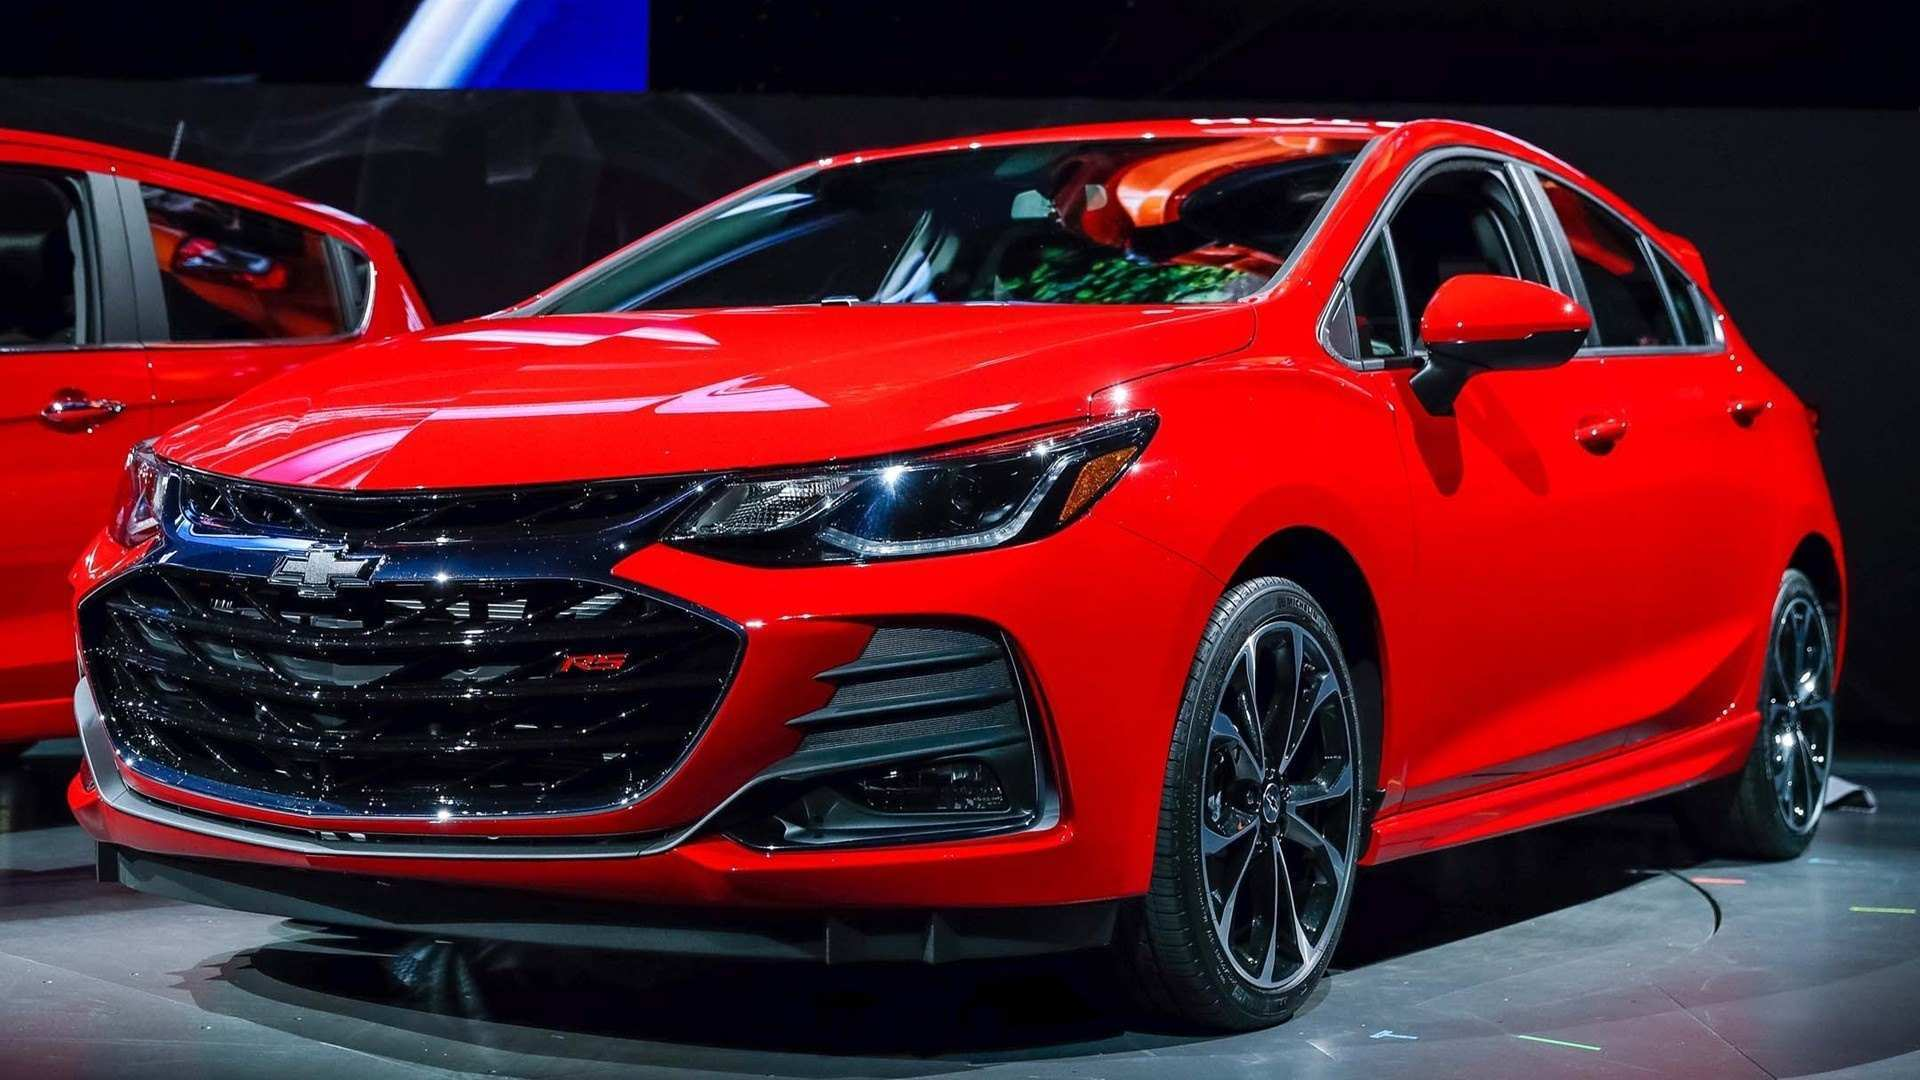 26 All New 2020 Chevrolet Spark Price And Release Date